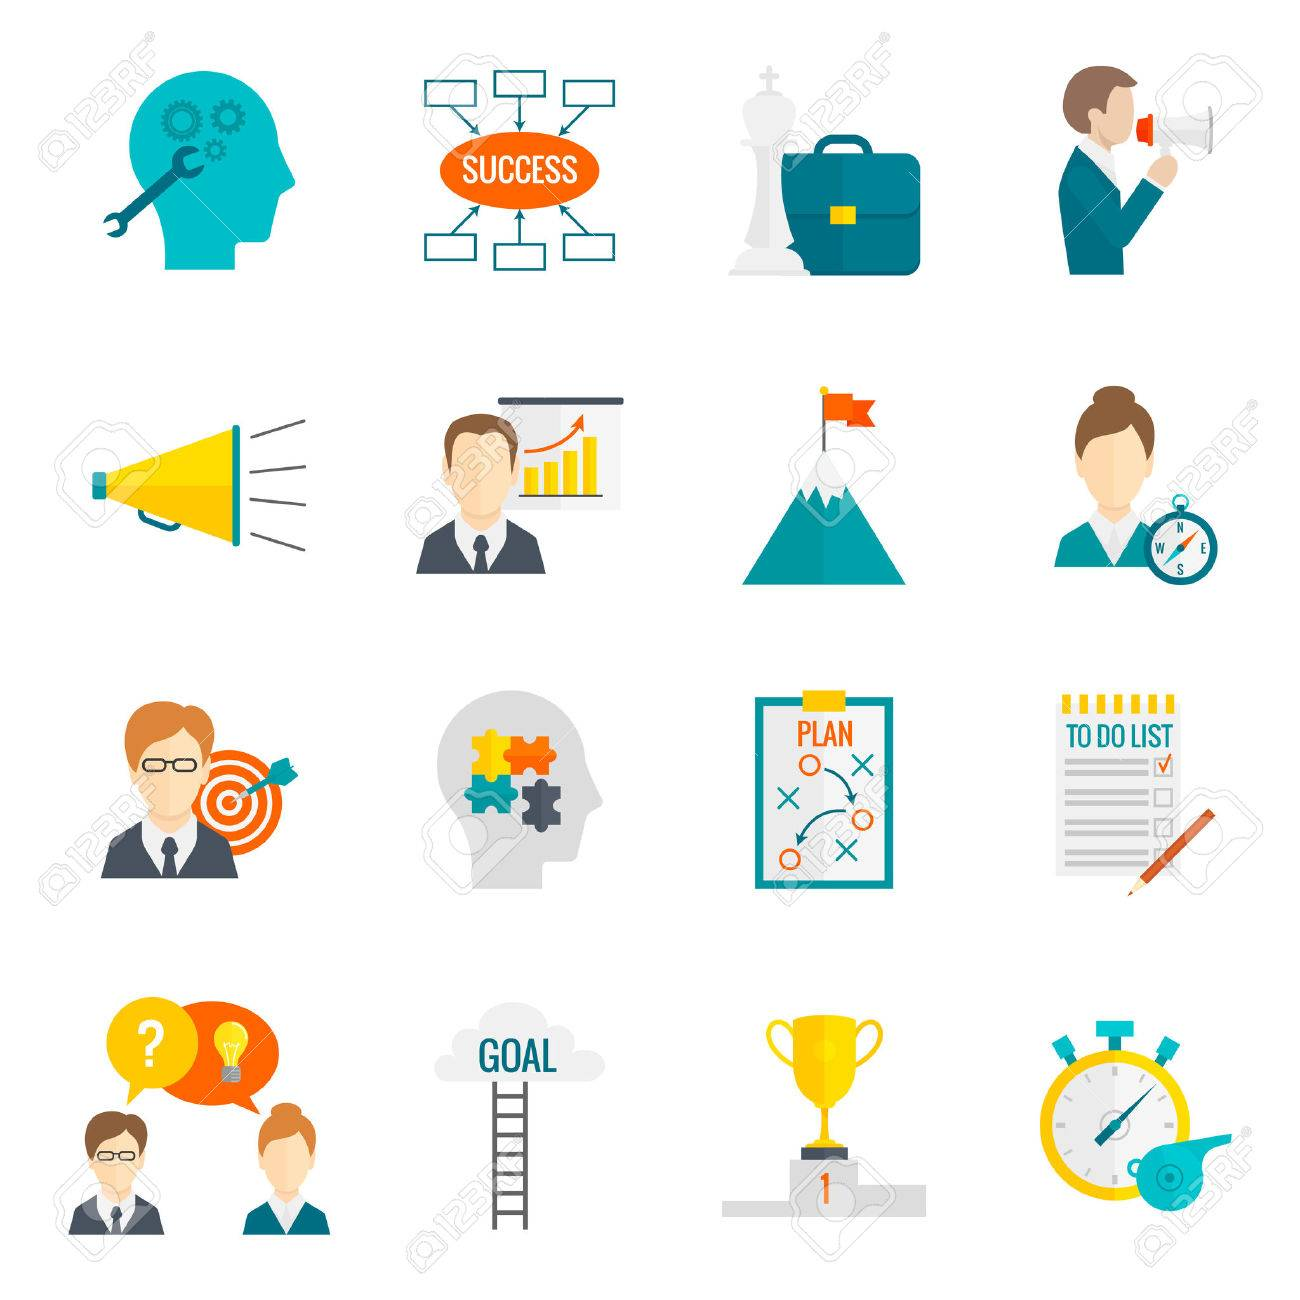 coaching business leadership management and teamwork motivation coaching business leadership management and teamwork motivation icon flat set isolated vector illustration stock vector